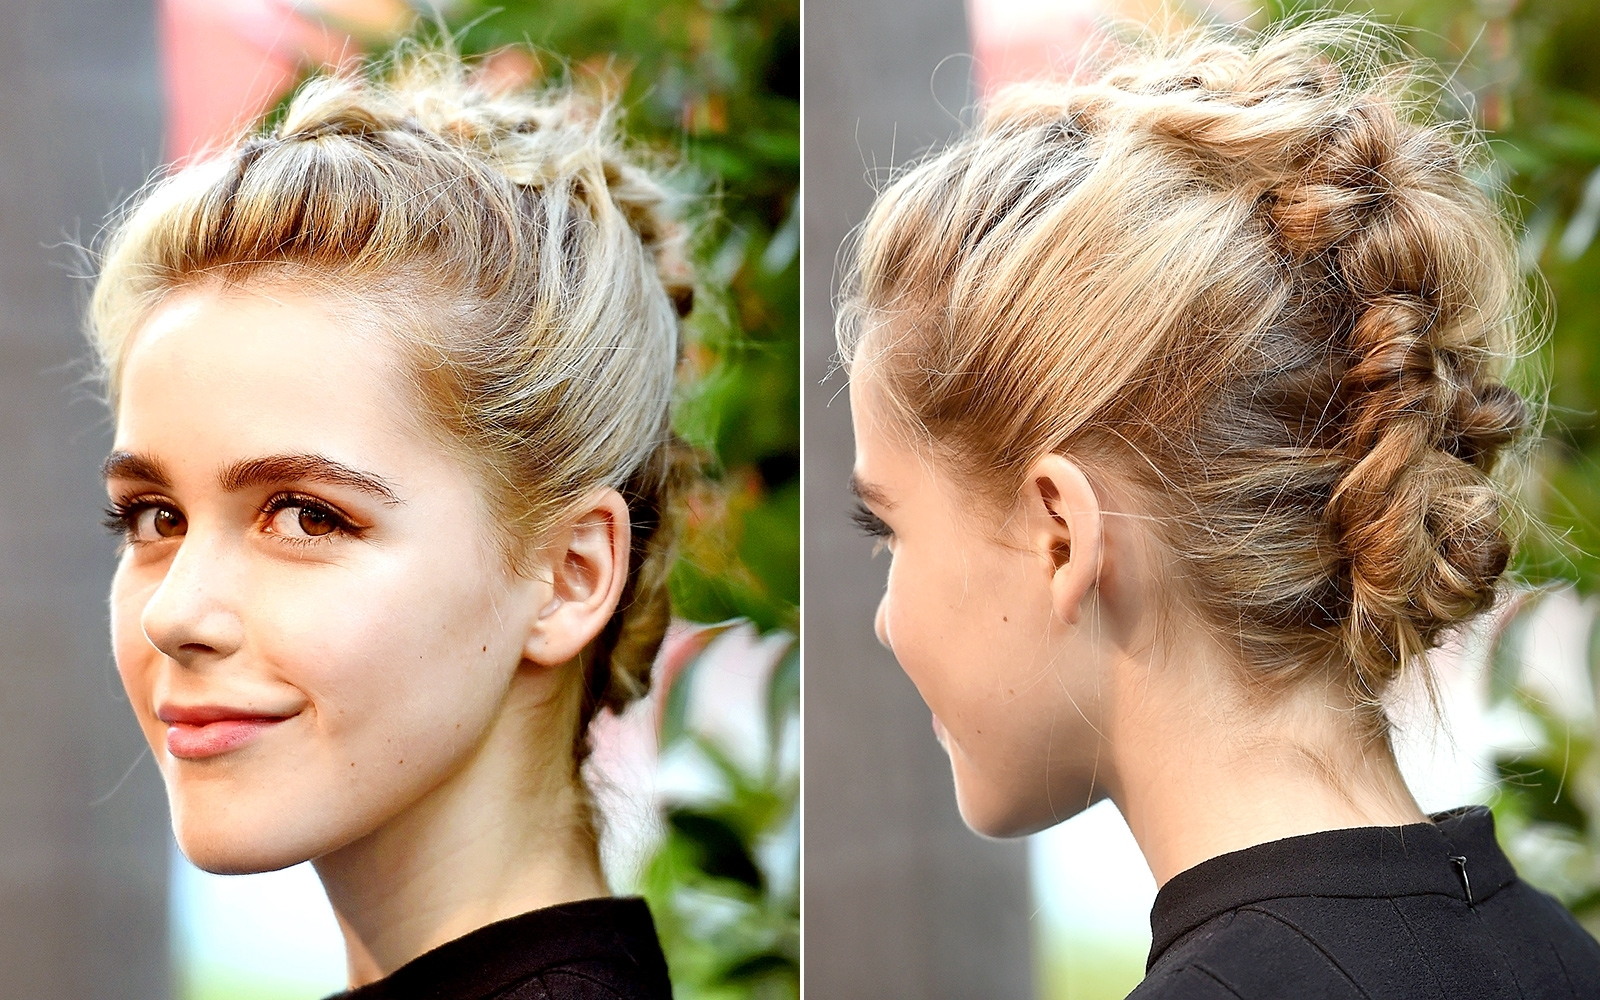 Widely Used Red Carpet Braided Hairstyles For Celebs' Braided Hairstyles On The Red Carpet (View 15 of 15)